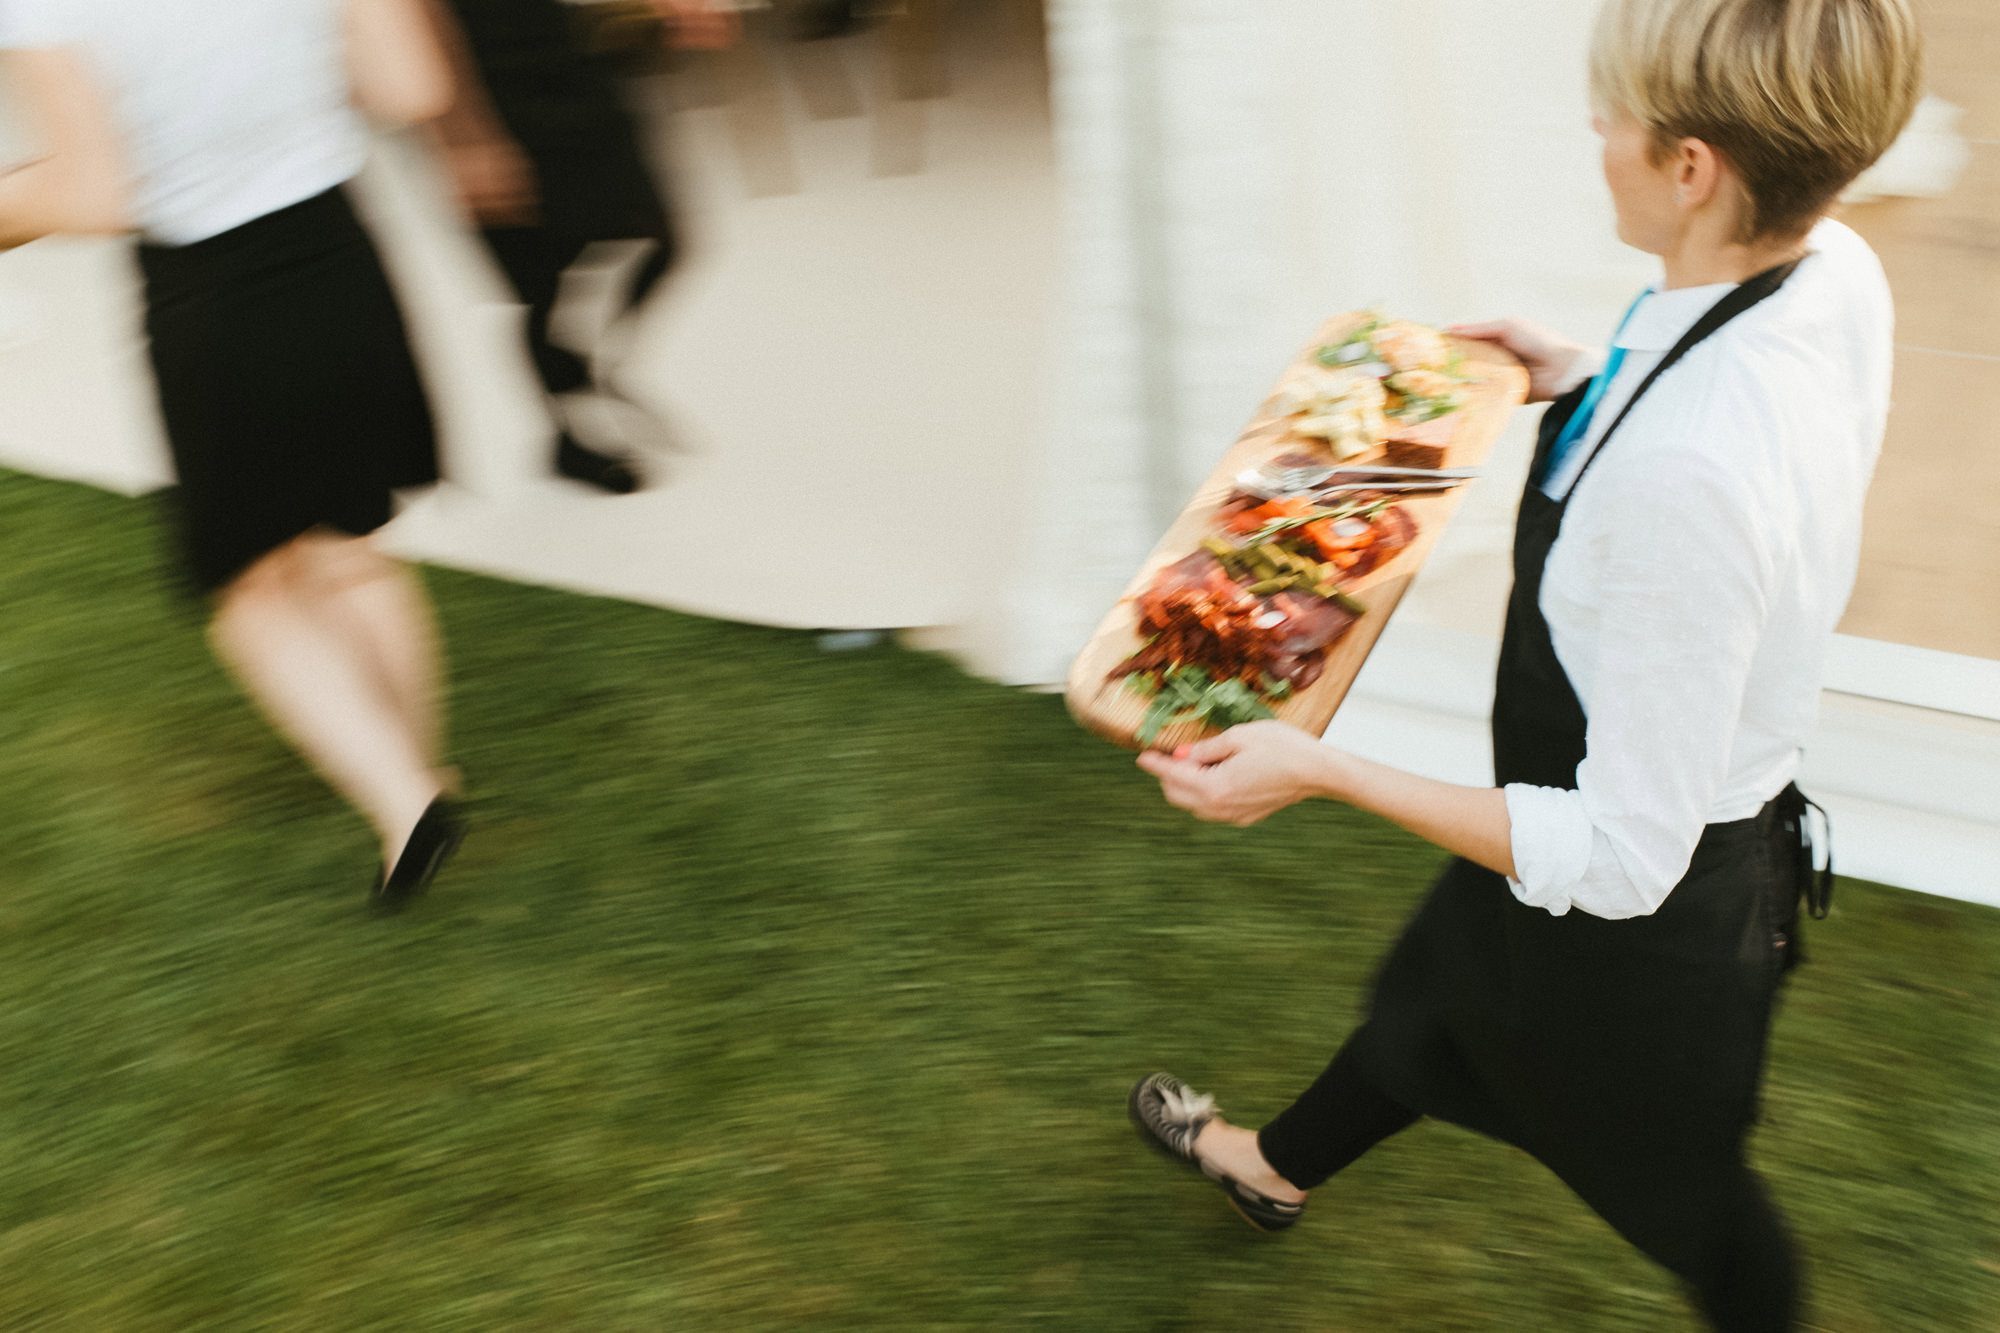 Starters are served at Devon wedding.jpg